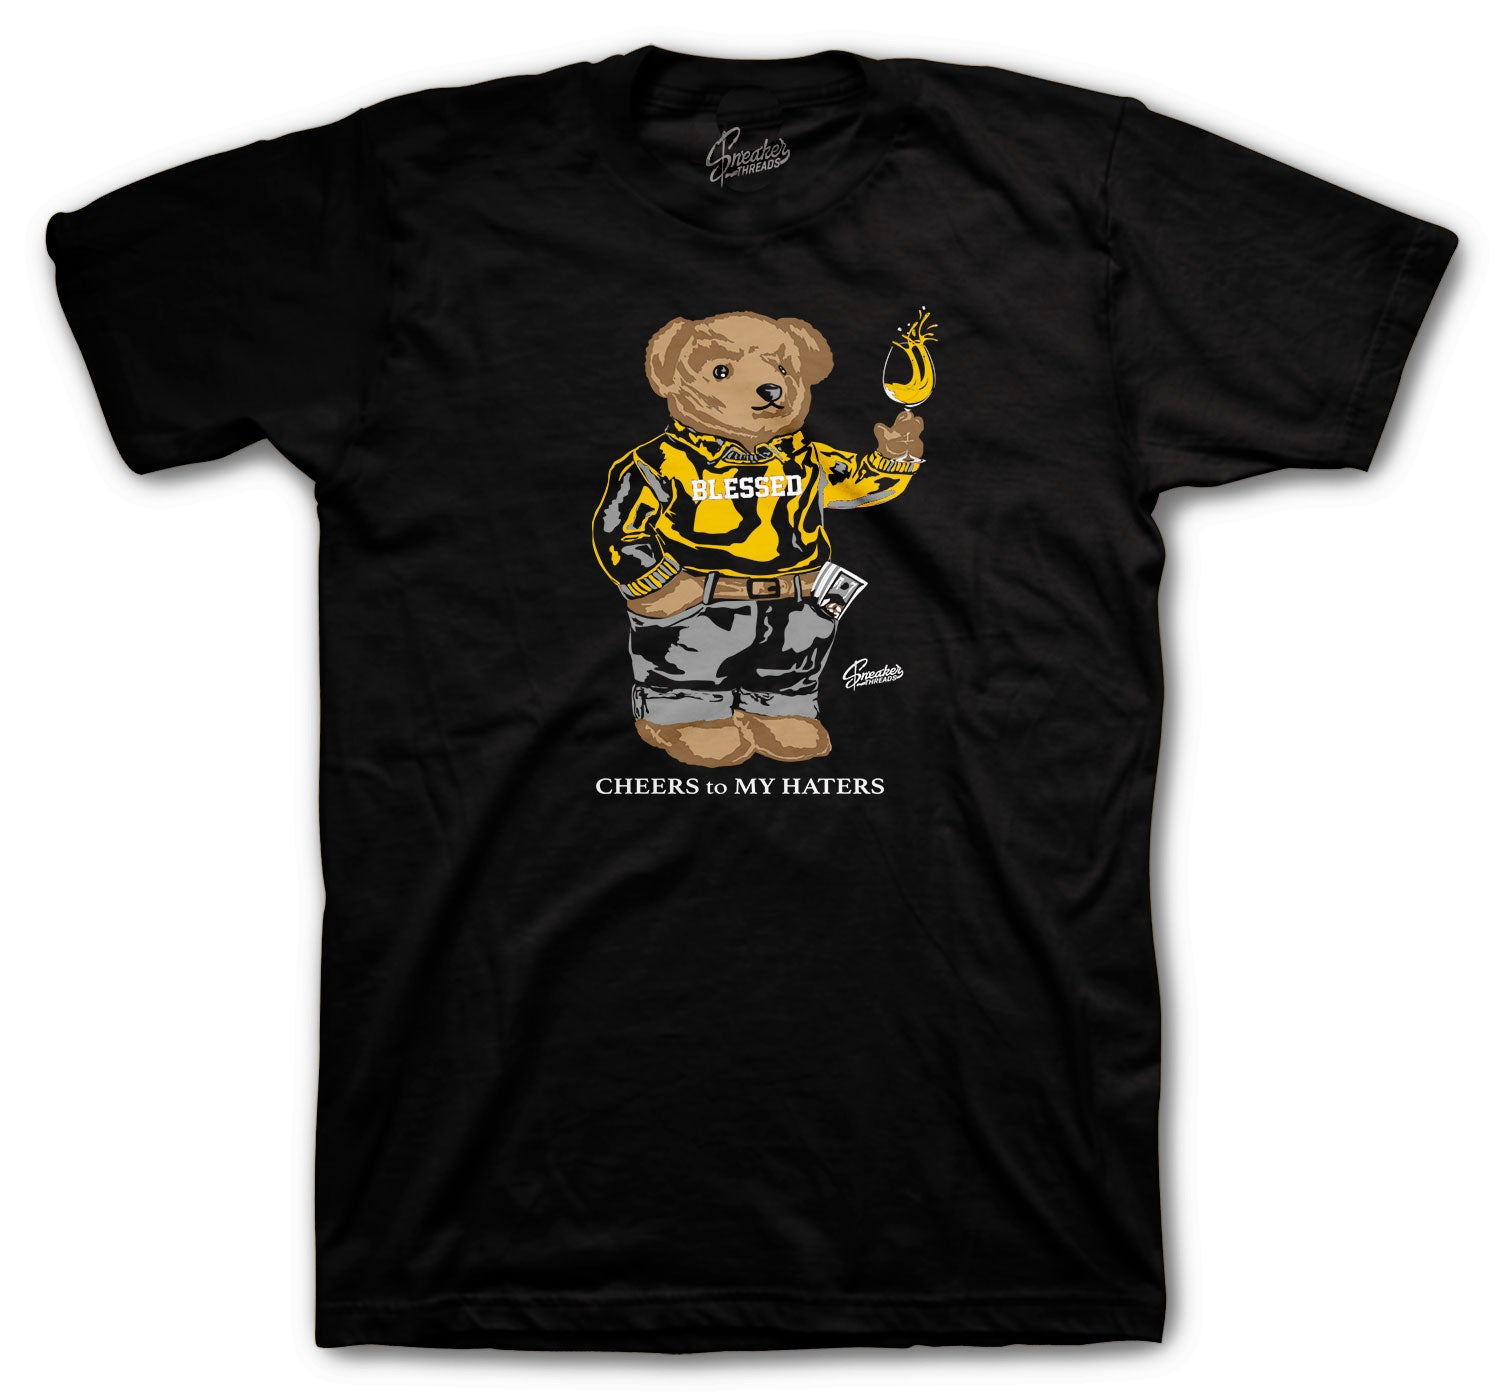 Jordan 9 University Gold Shirt - Cheers Bear - Black